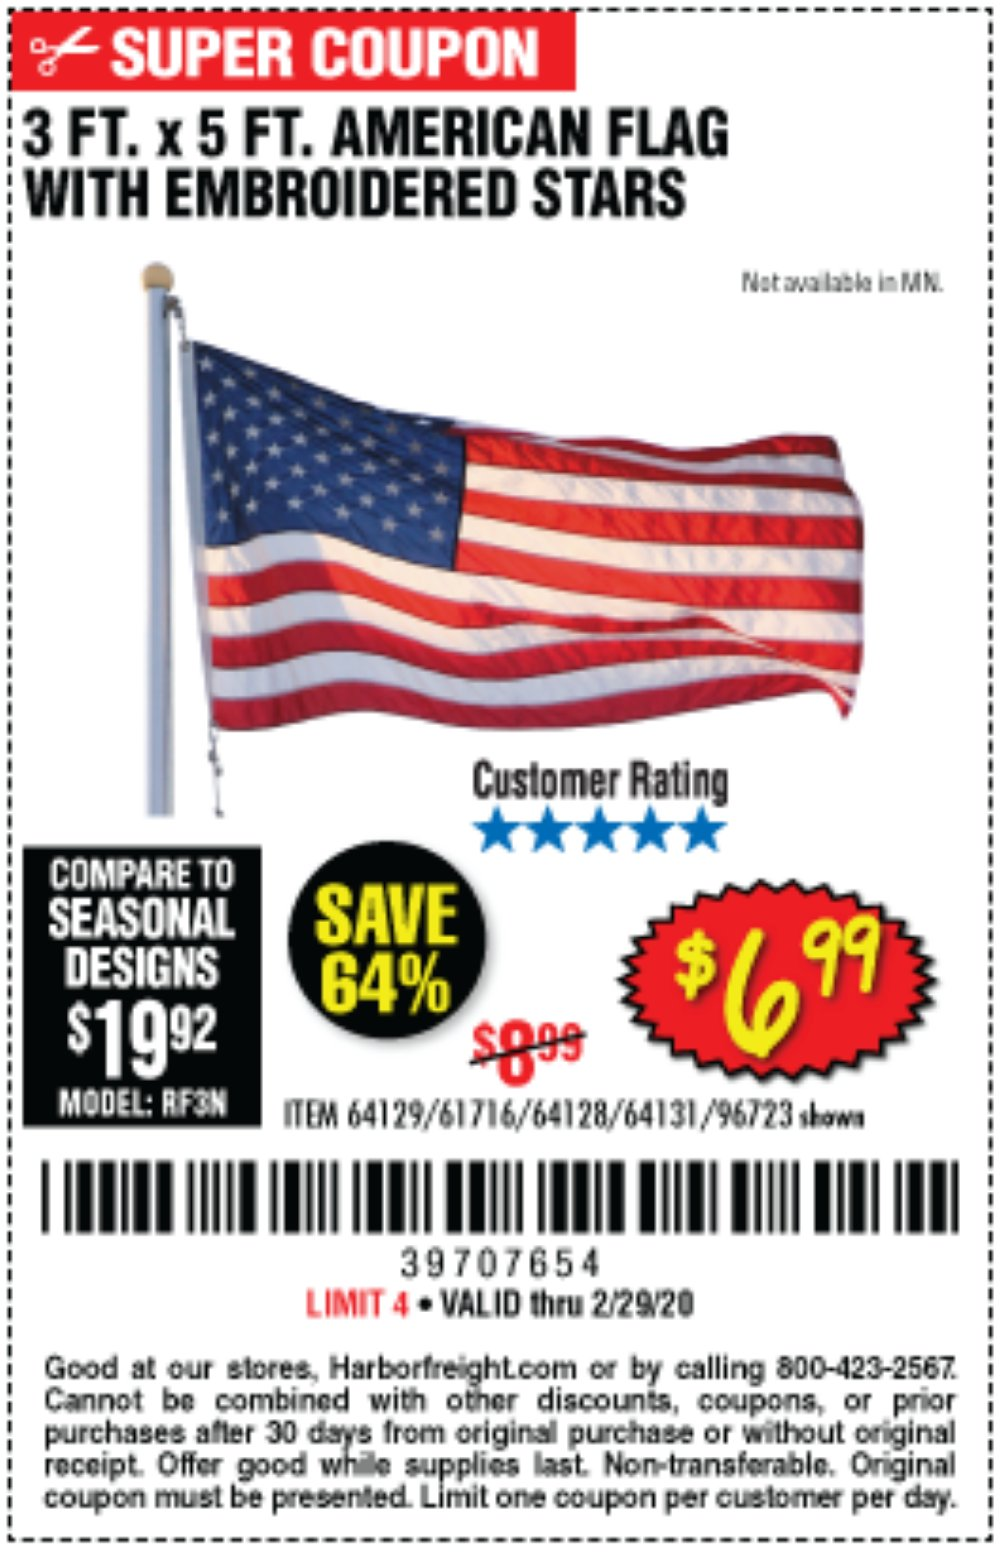 Harbor Freight Coupon, HF Coupons - 3 Ft. X 5 Ft. American Flag With Embroidered Stars